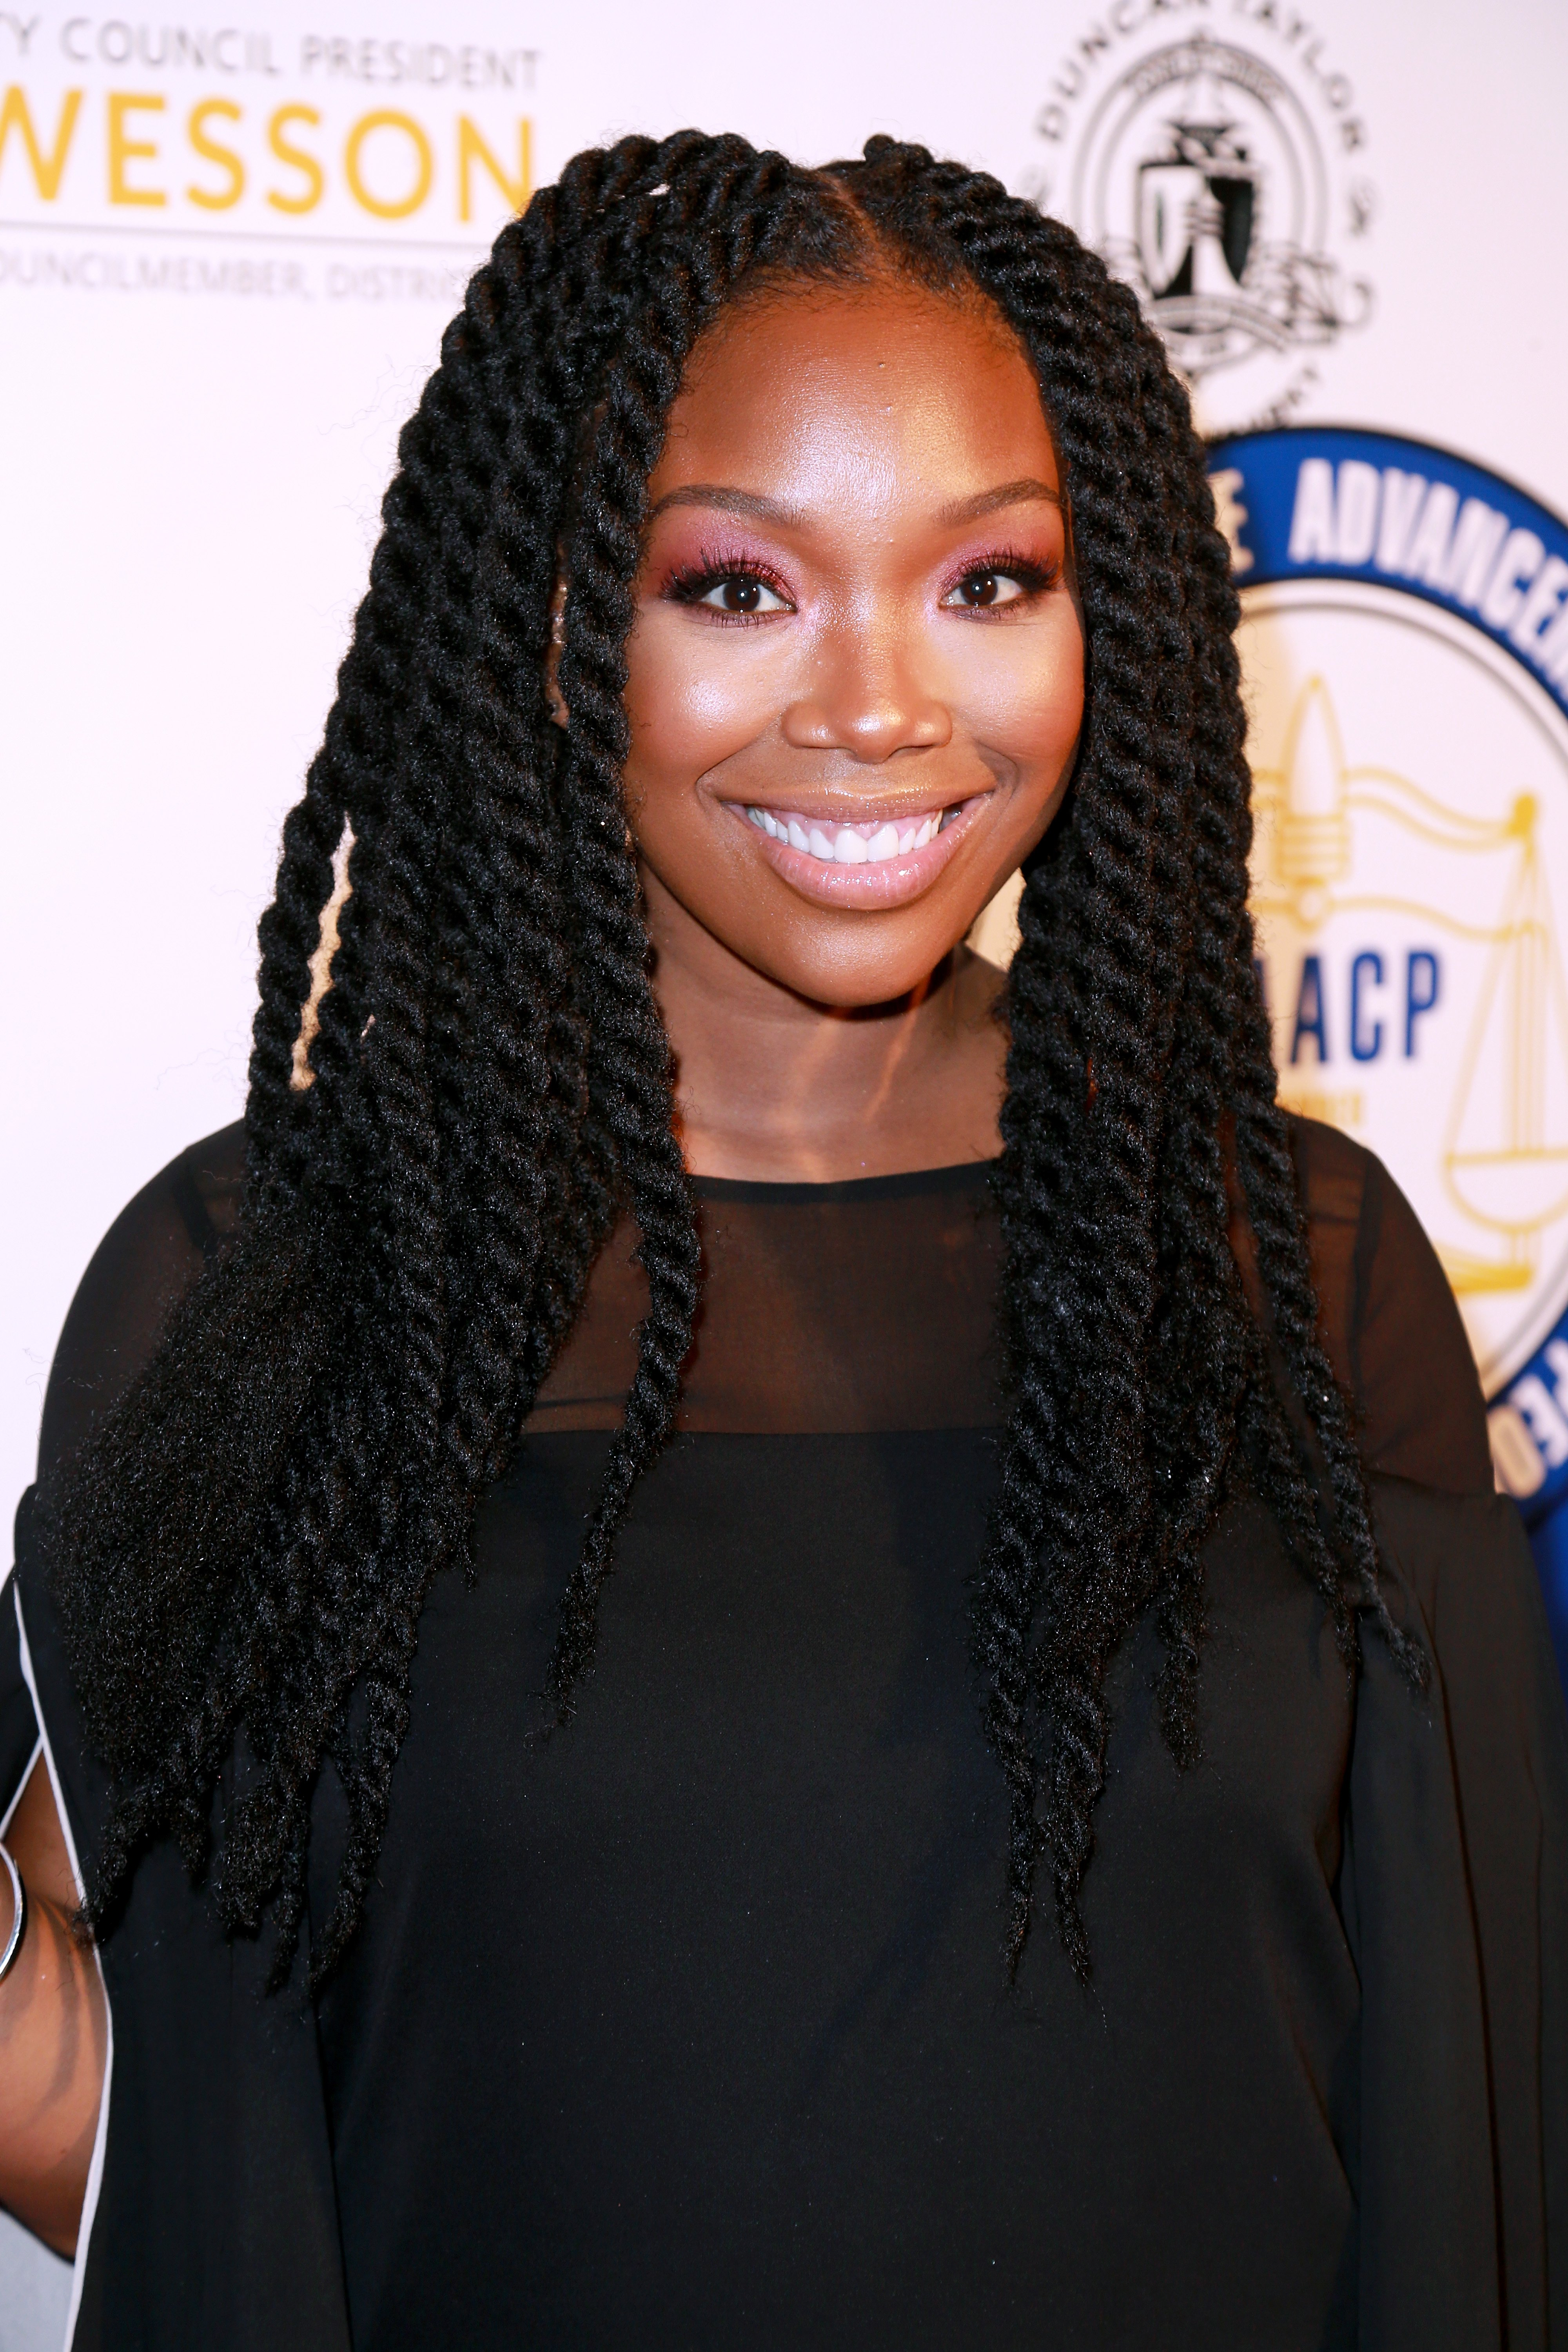 Brandy Norwood at the 27th Annual NAACP Awards in February 2018. | Photo: Getty Images